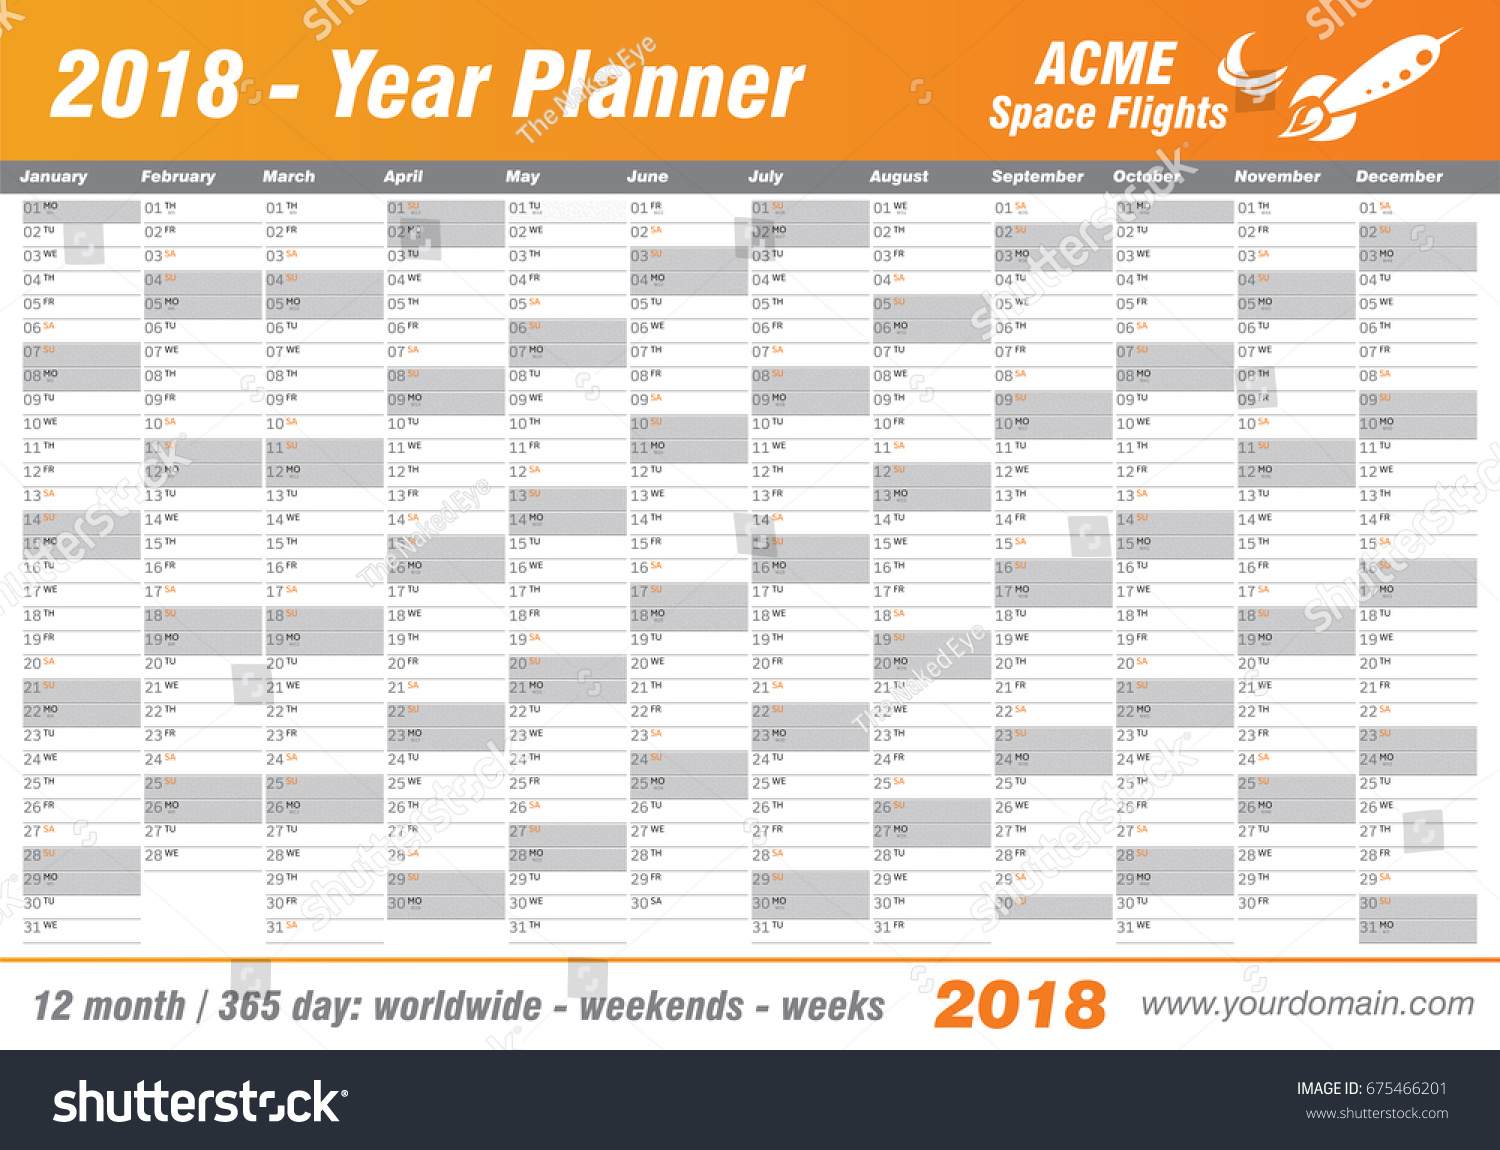 yearly financial planner template - year planner calendar 2018 vector annual stock vector